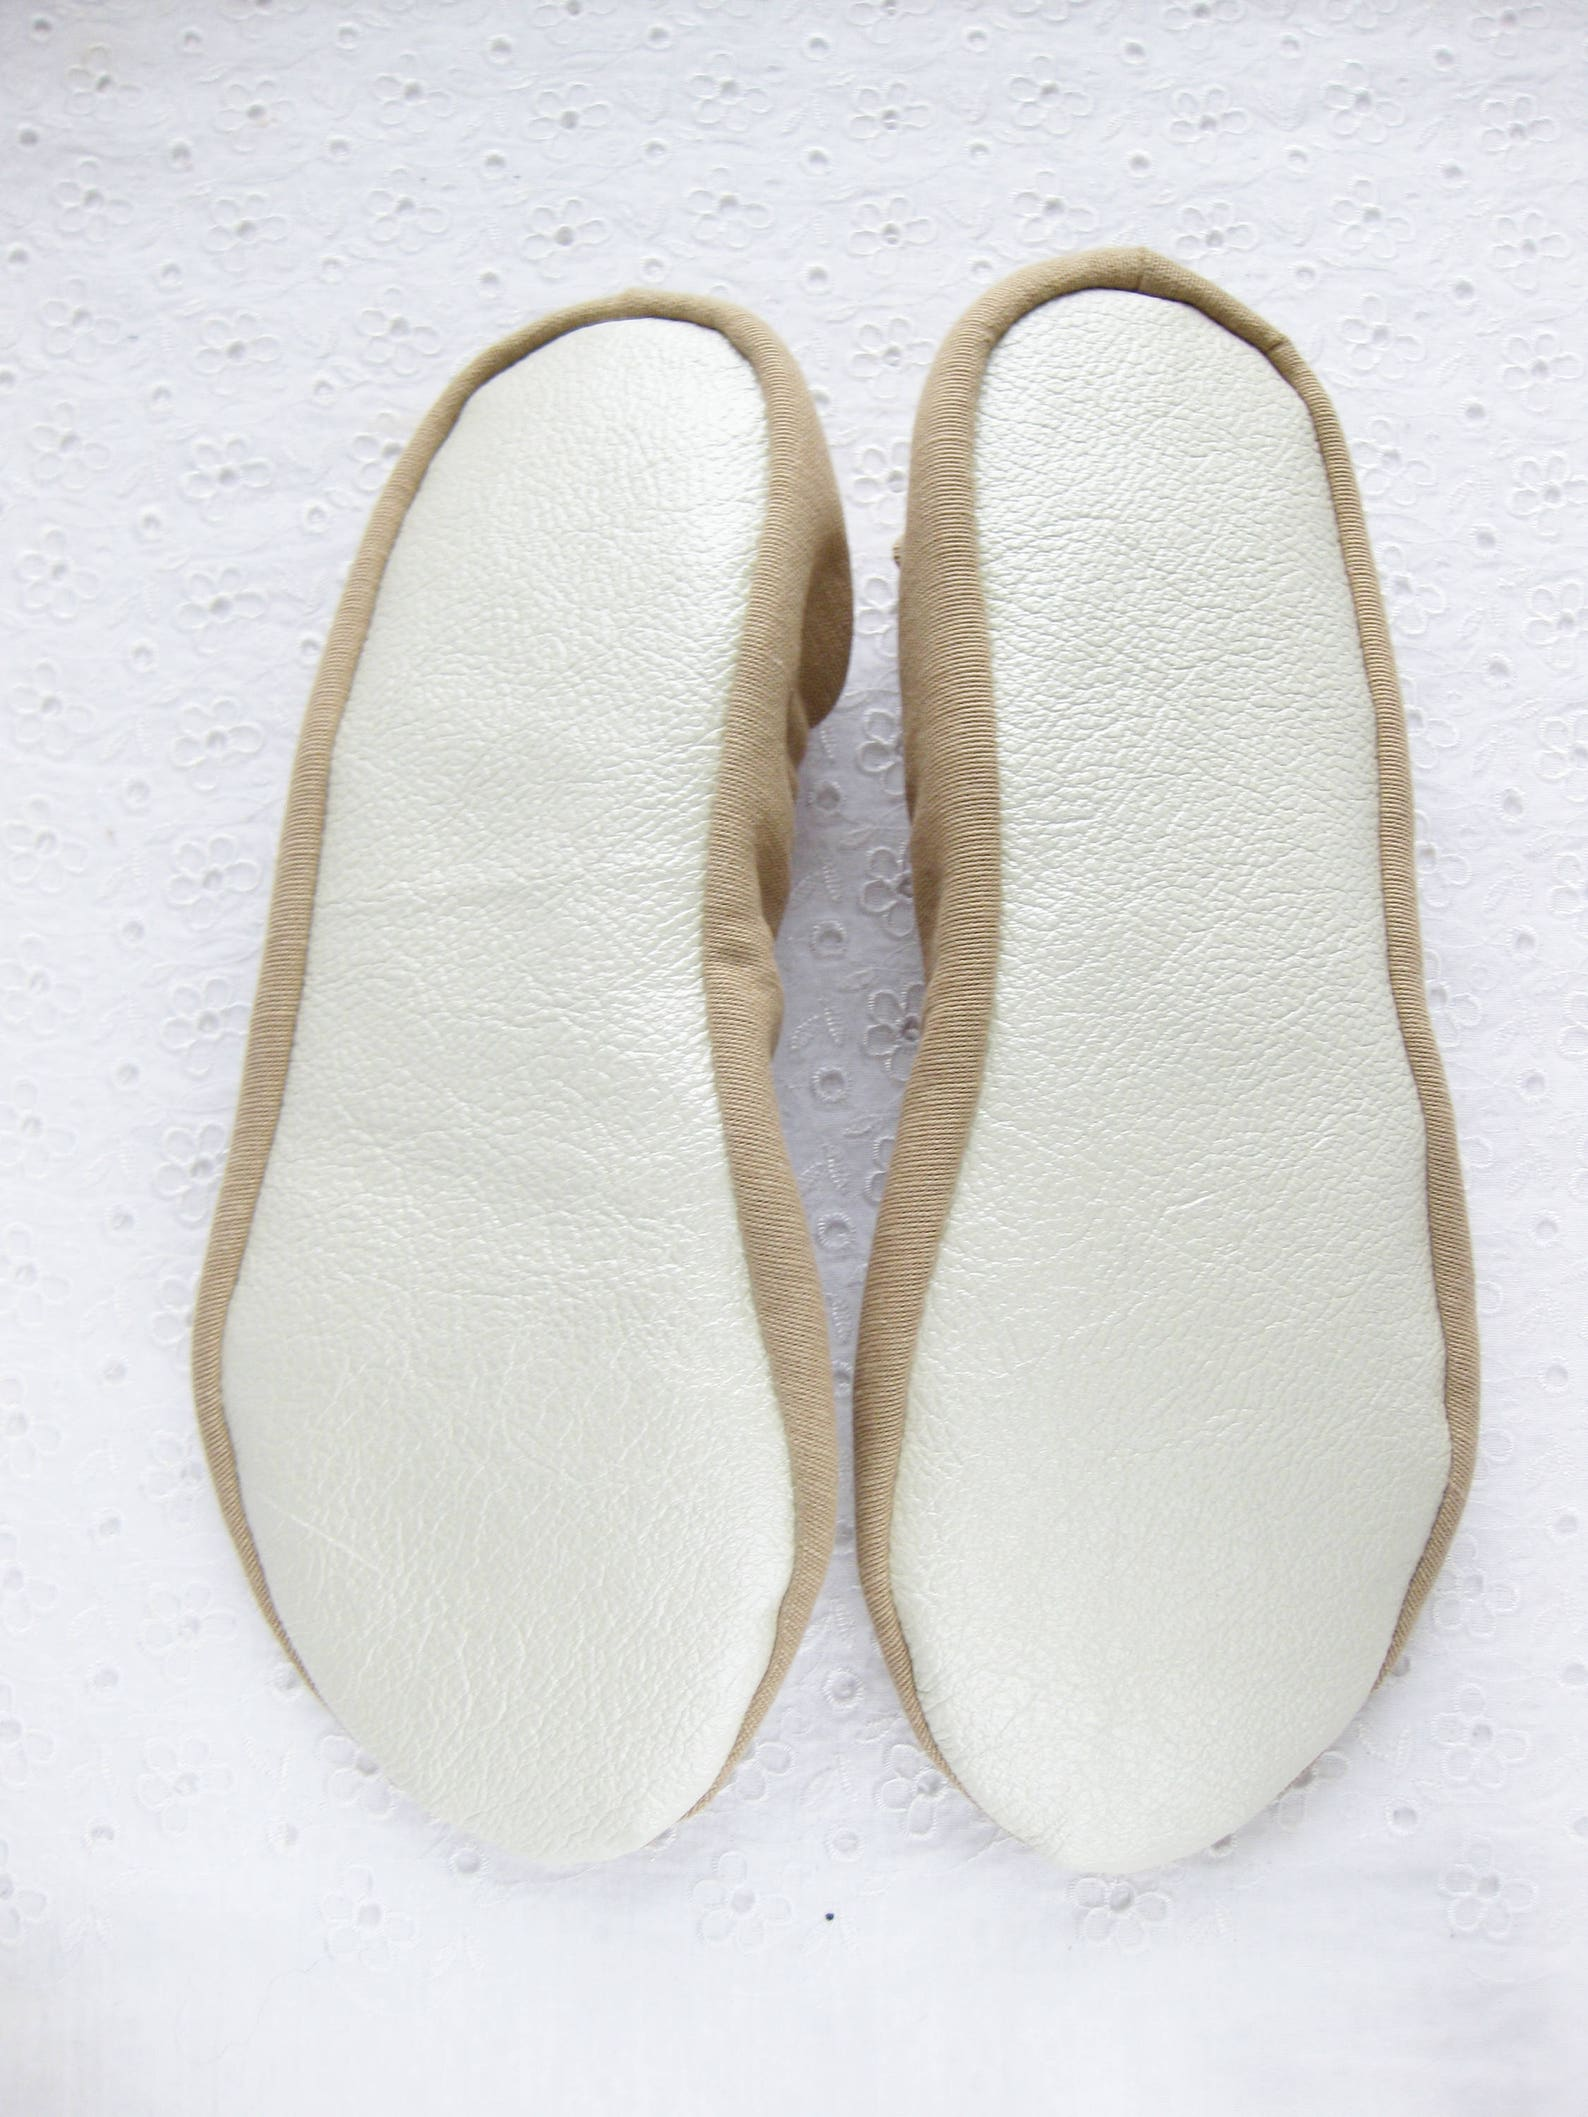 womens slippers, ballet slippers, ladies slippers, rustic slippers, cotton slippers, home shoes, soft slippers, handmade slipper